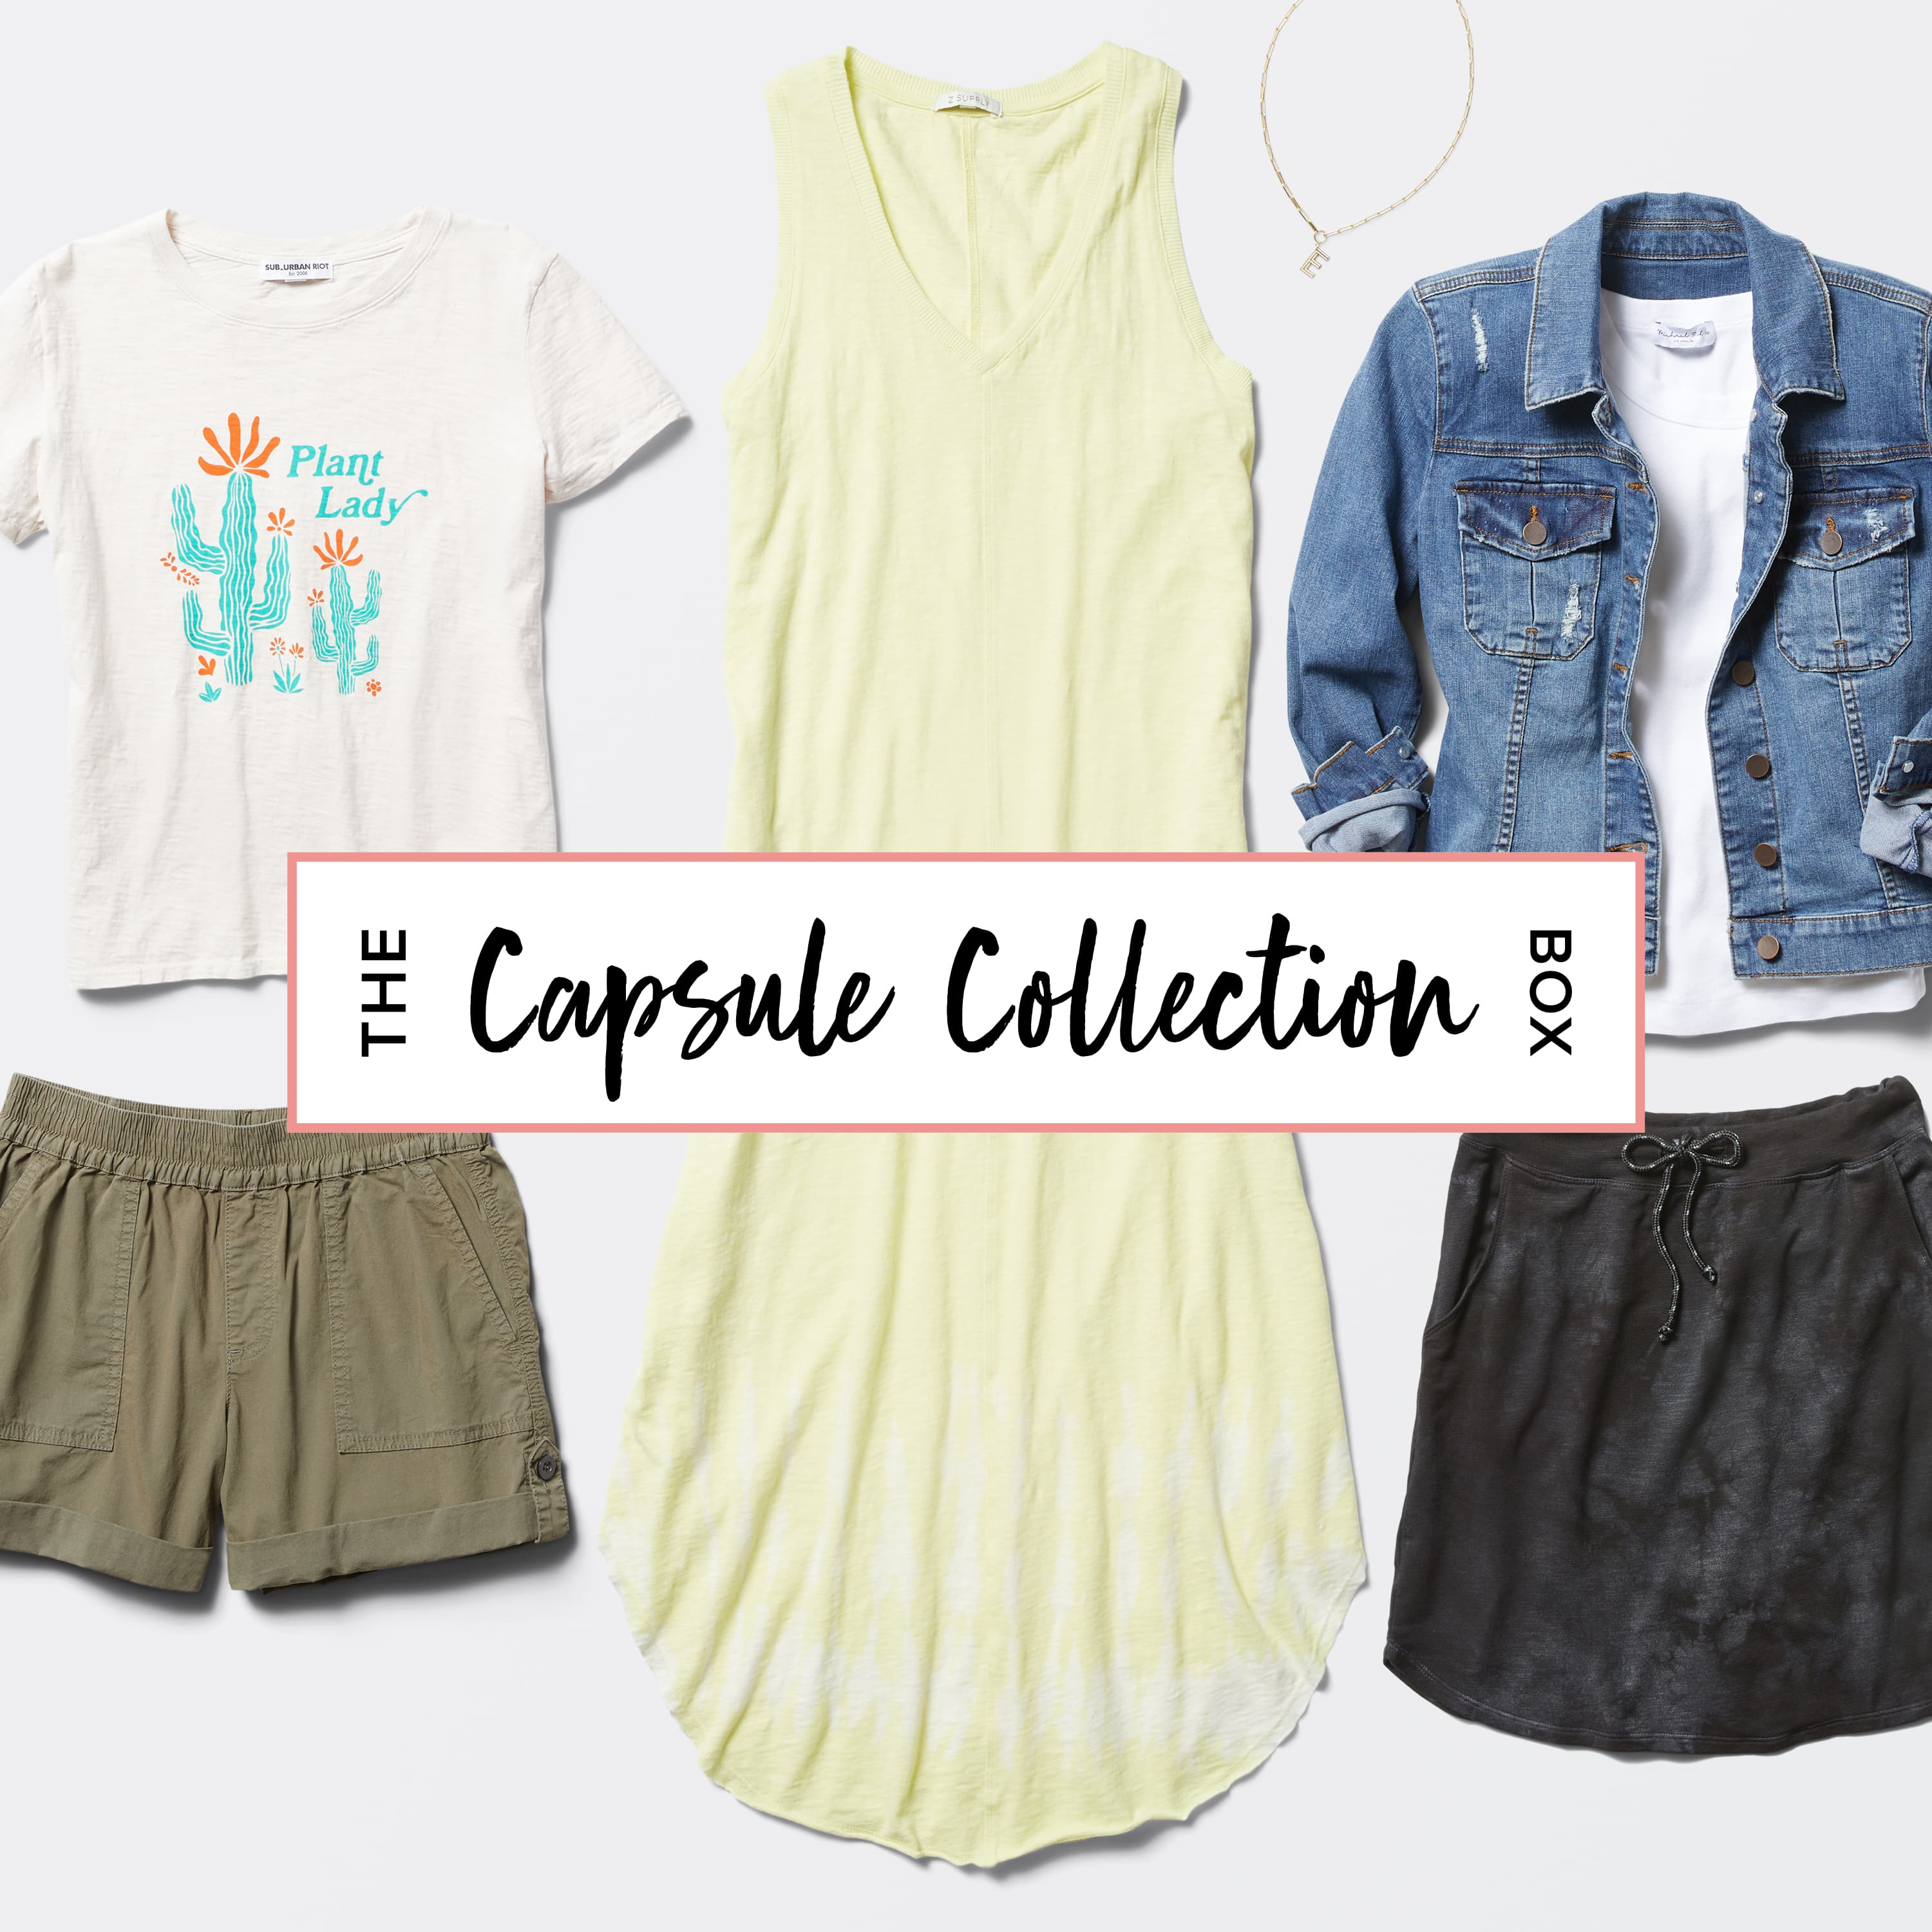 The Capsule Collection Box